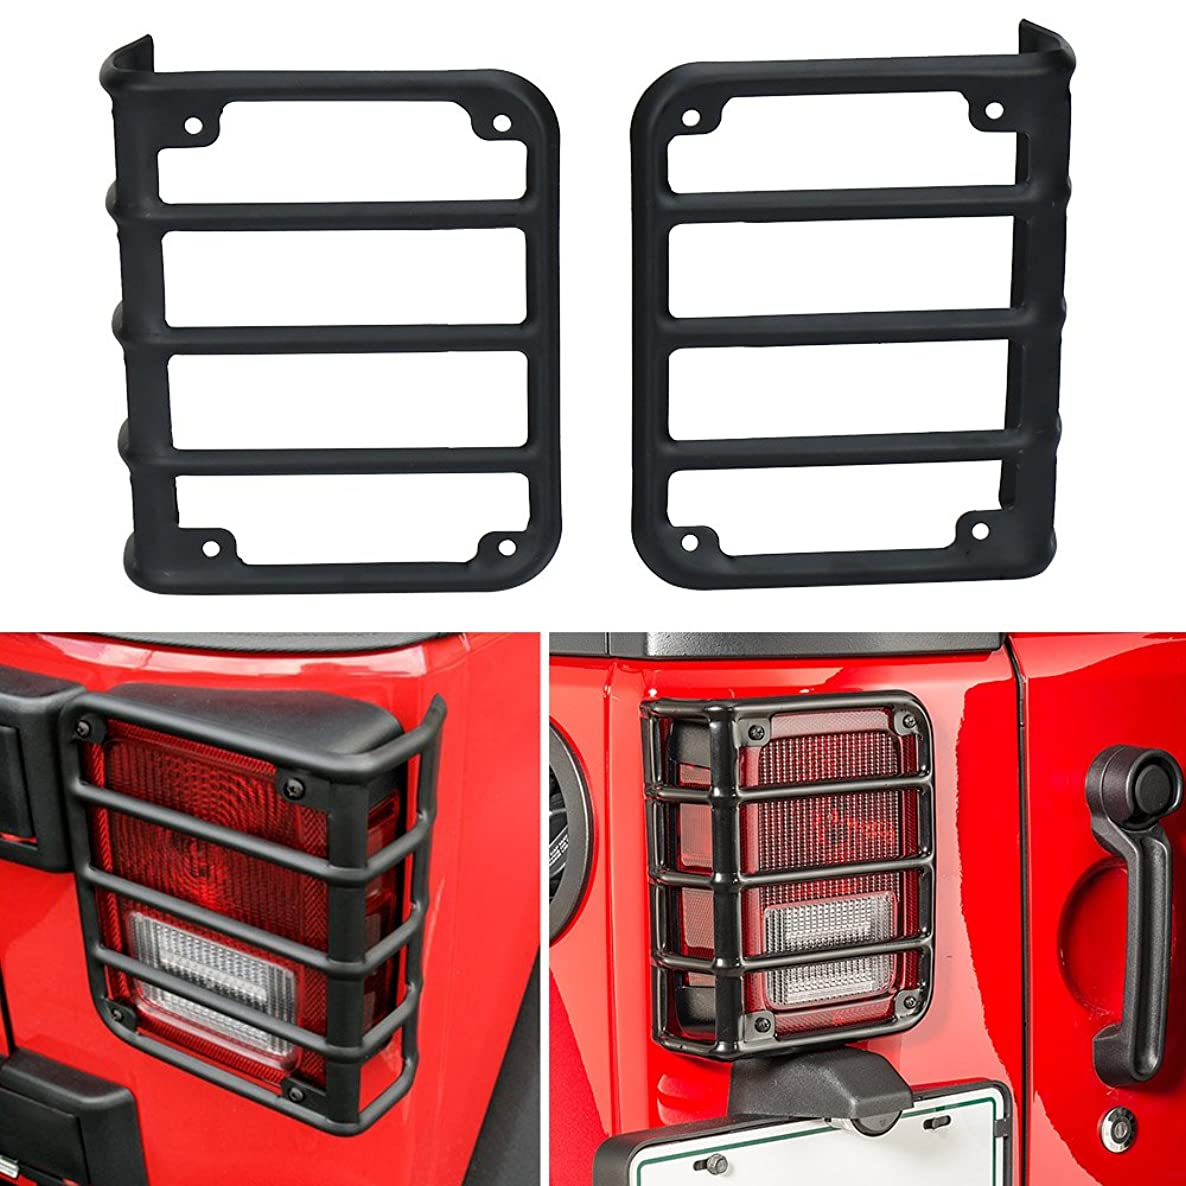 Jonathan-Shop - Pair of Taillight Guard Bracket for Jeep Wrangler (JK) 2007- US Version